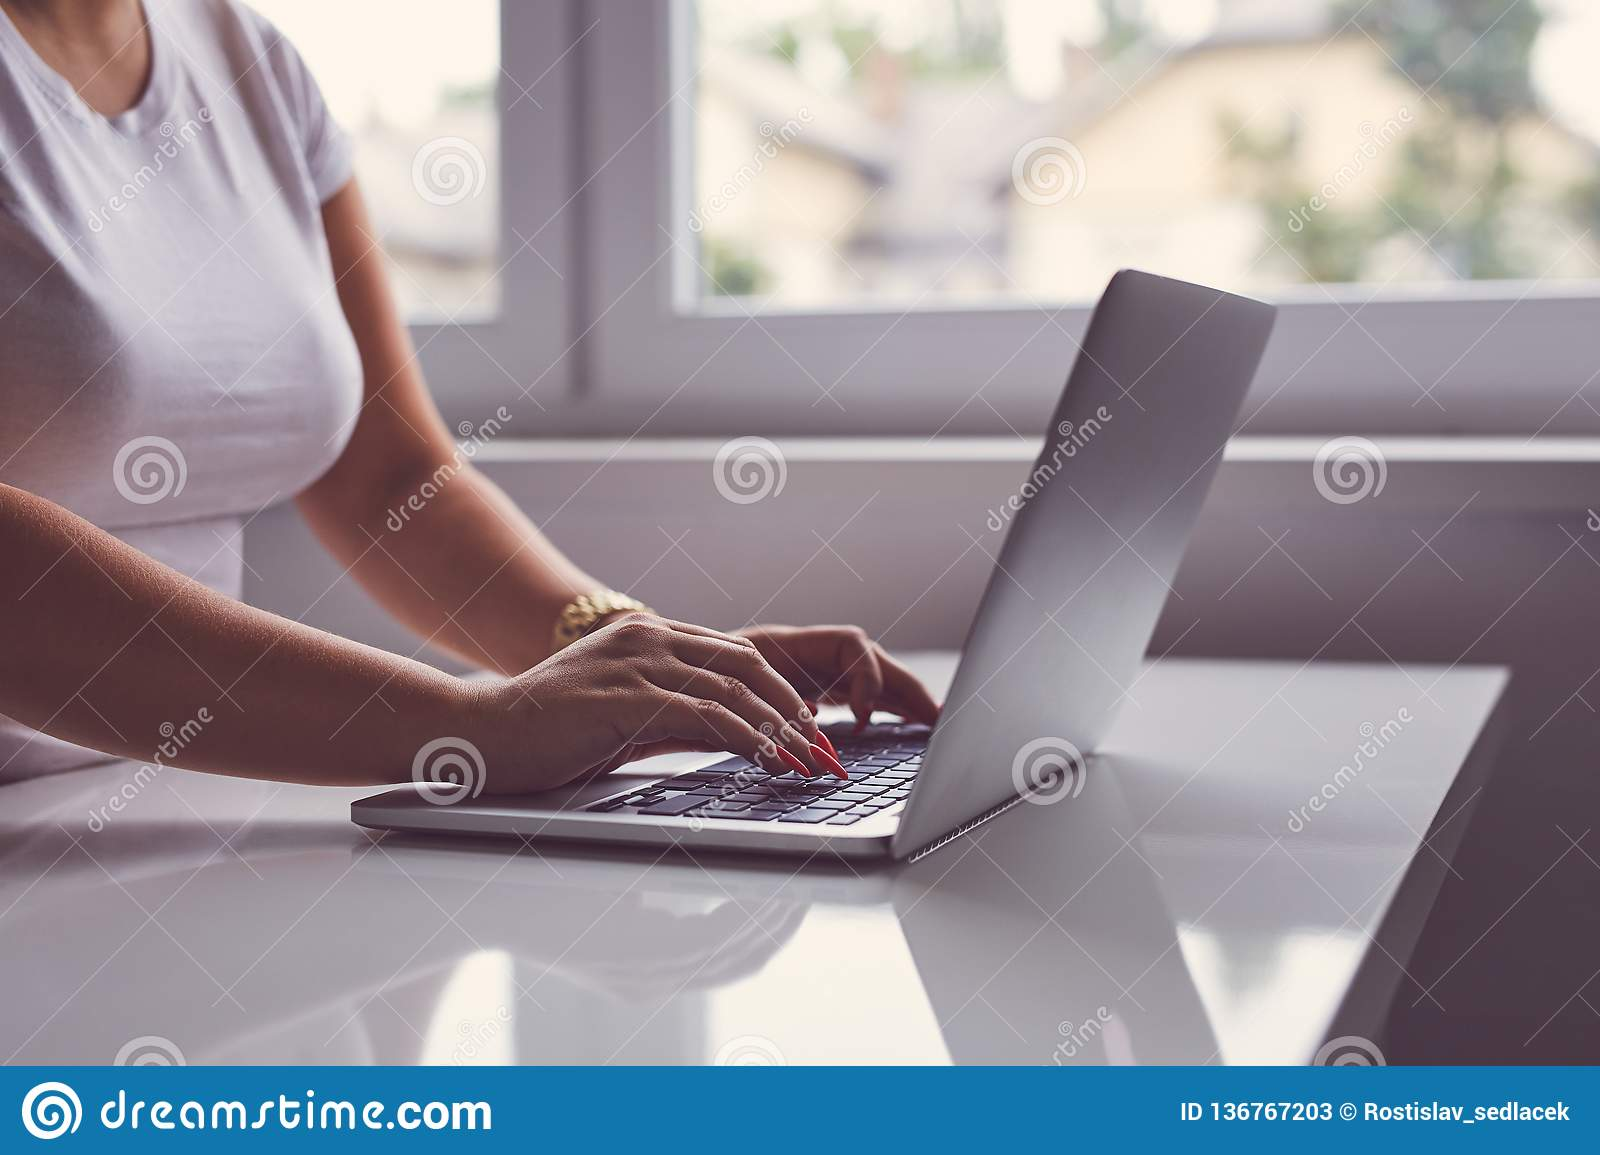 Woman working on a laptop in office